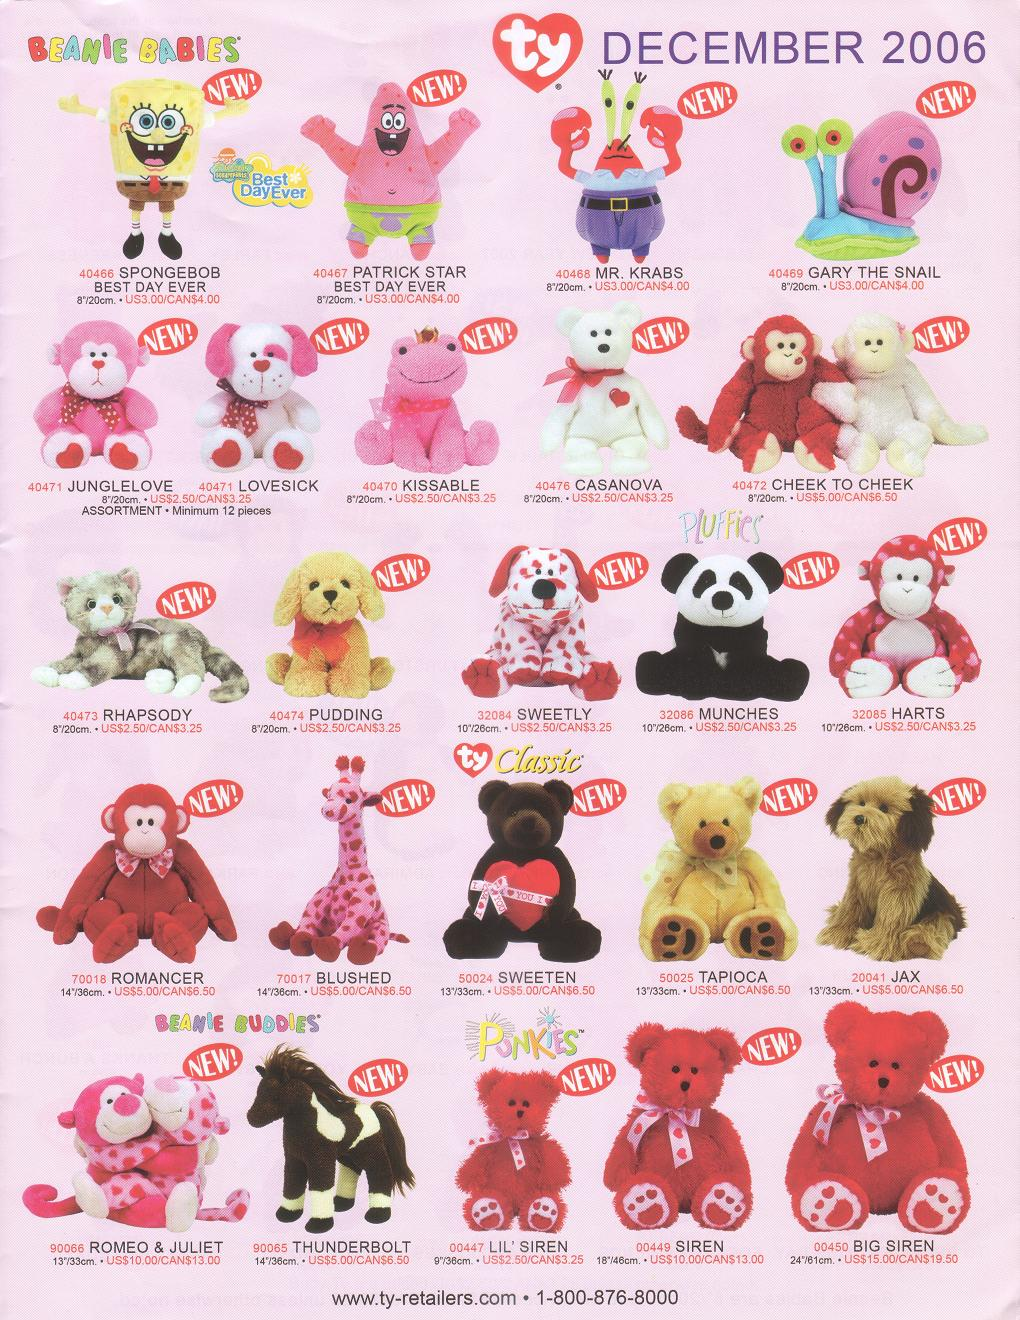 b2f7ebf774c Updated information on the posting below! The new releases have been  officially announced! Introducing December 2006. Beanie Babies